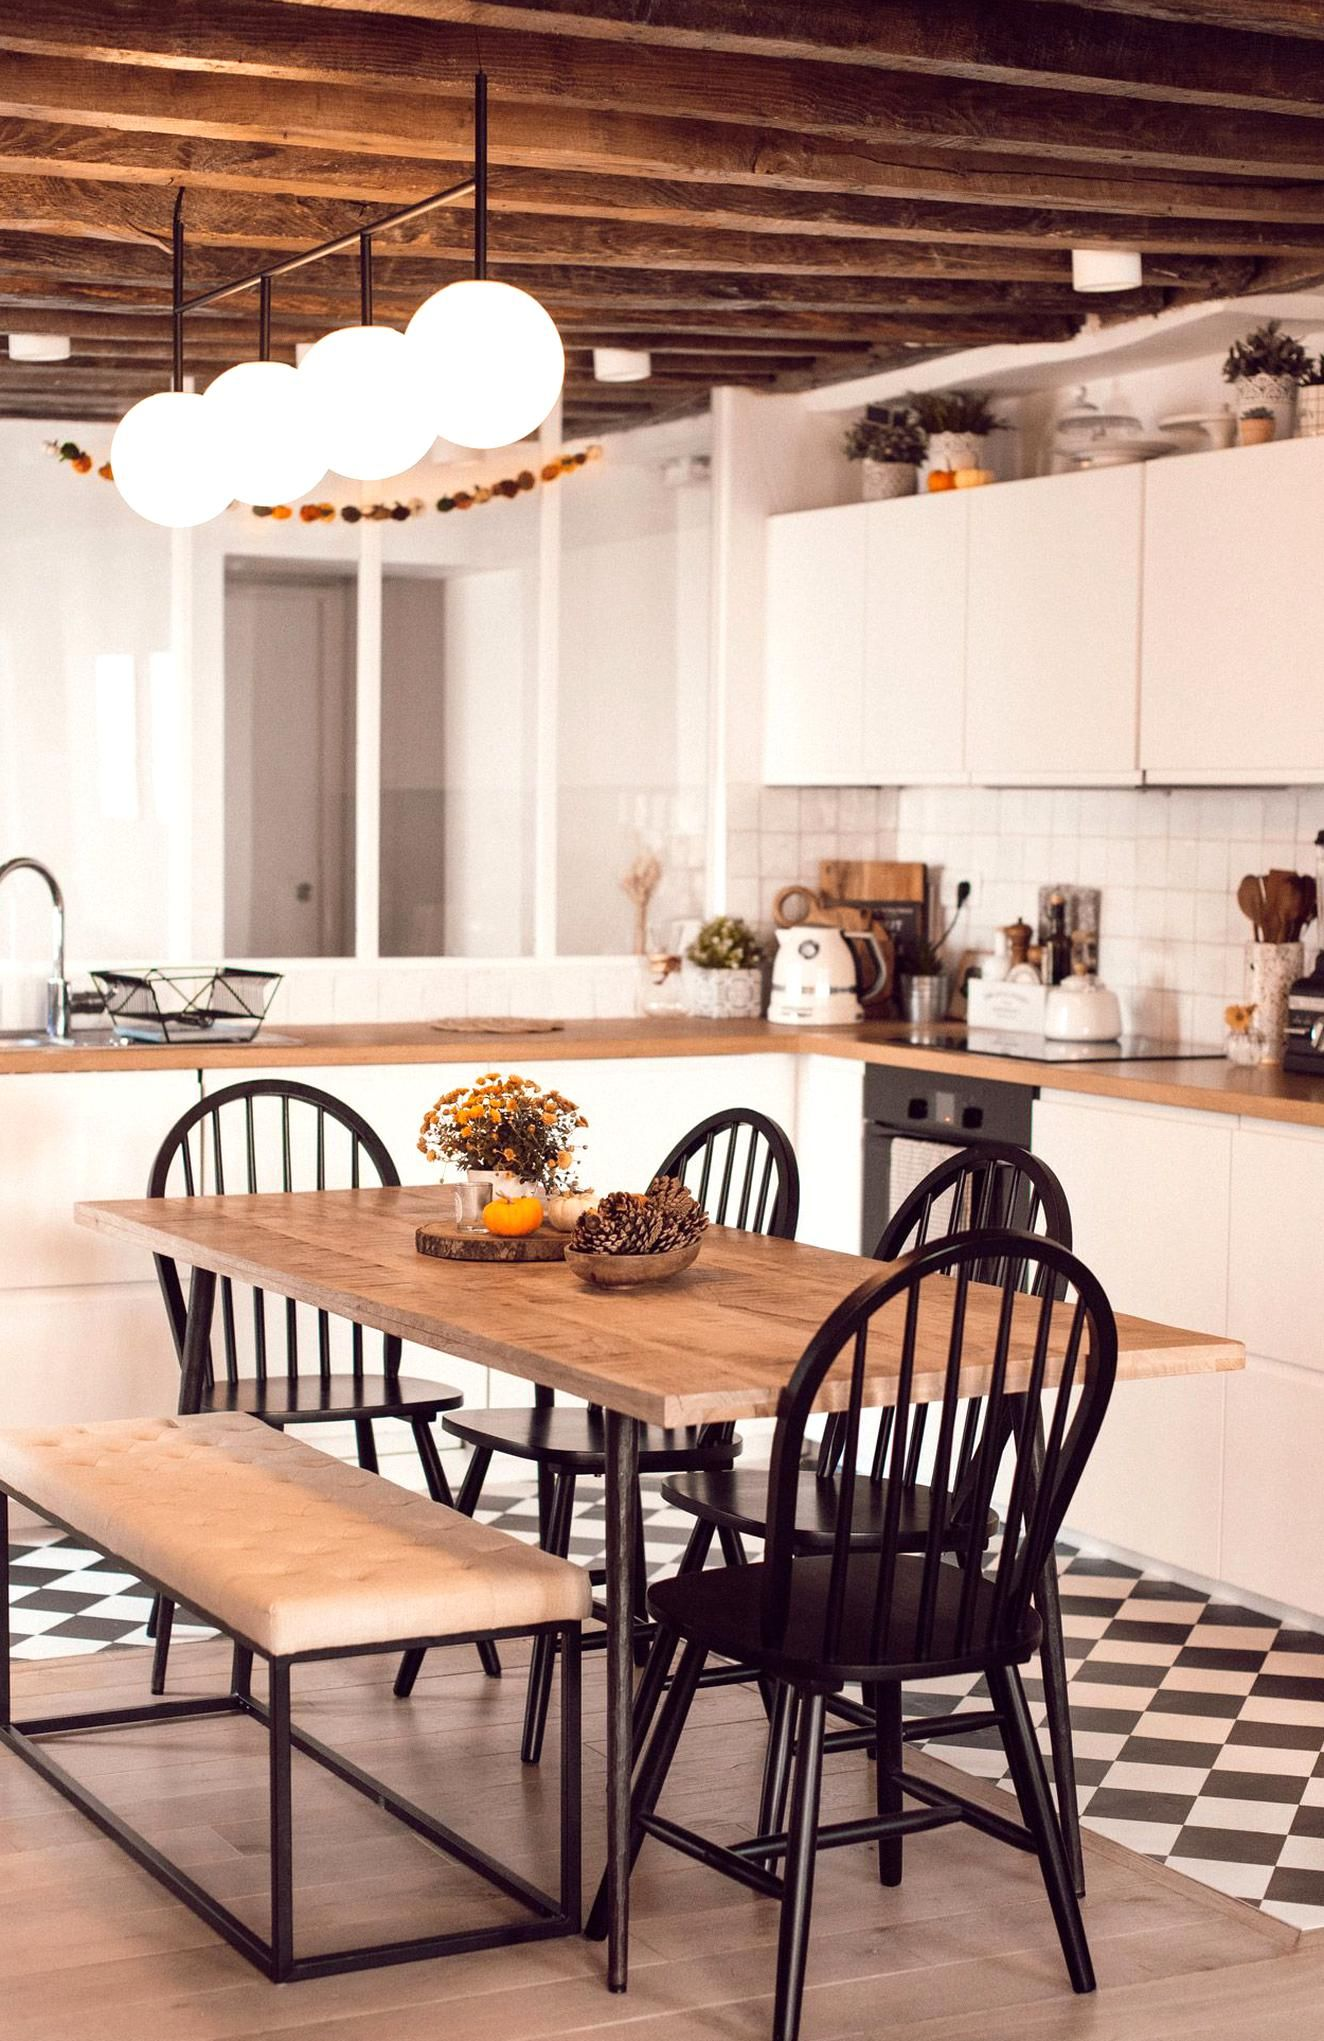 mode-and-the-city-article-cuisine-deco-18 in 18  Home kitchens